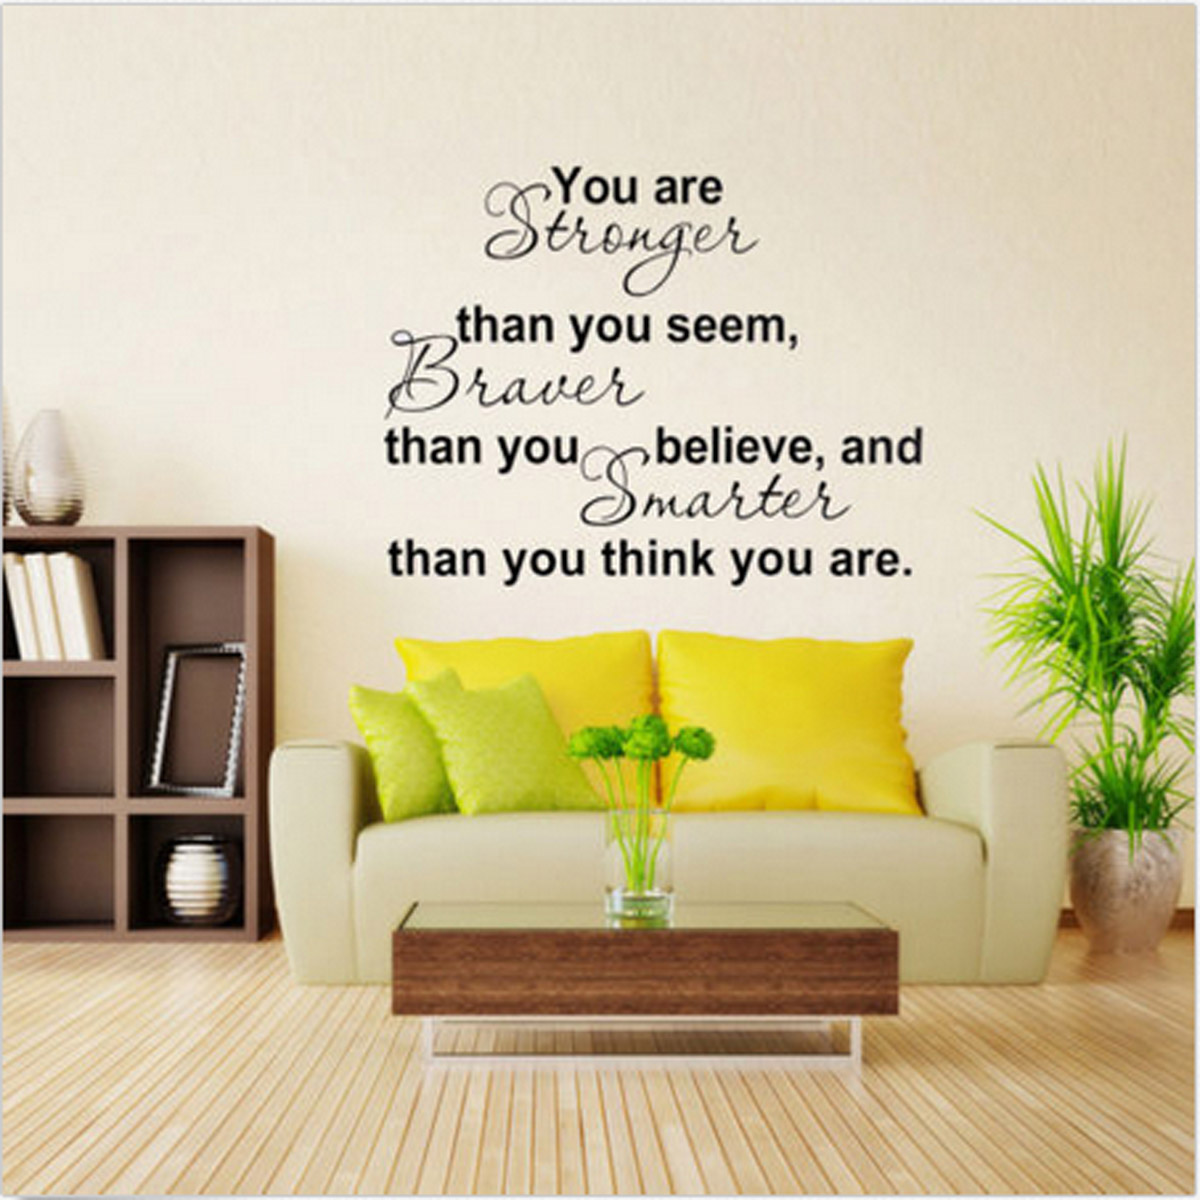 Family DIY Removable Wall Sticker Decal Art Vinyl Quotes Mural Home ...